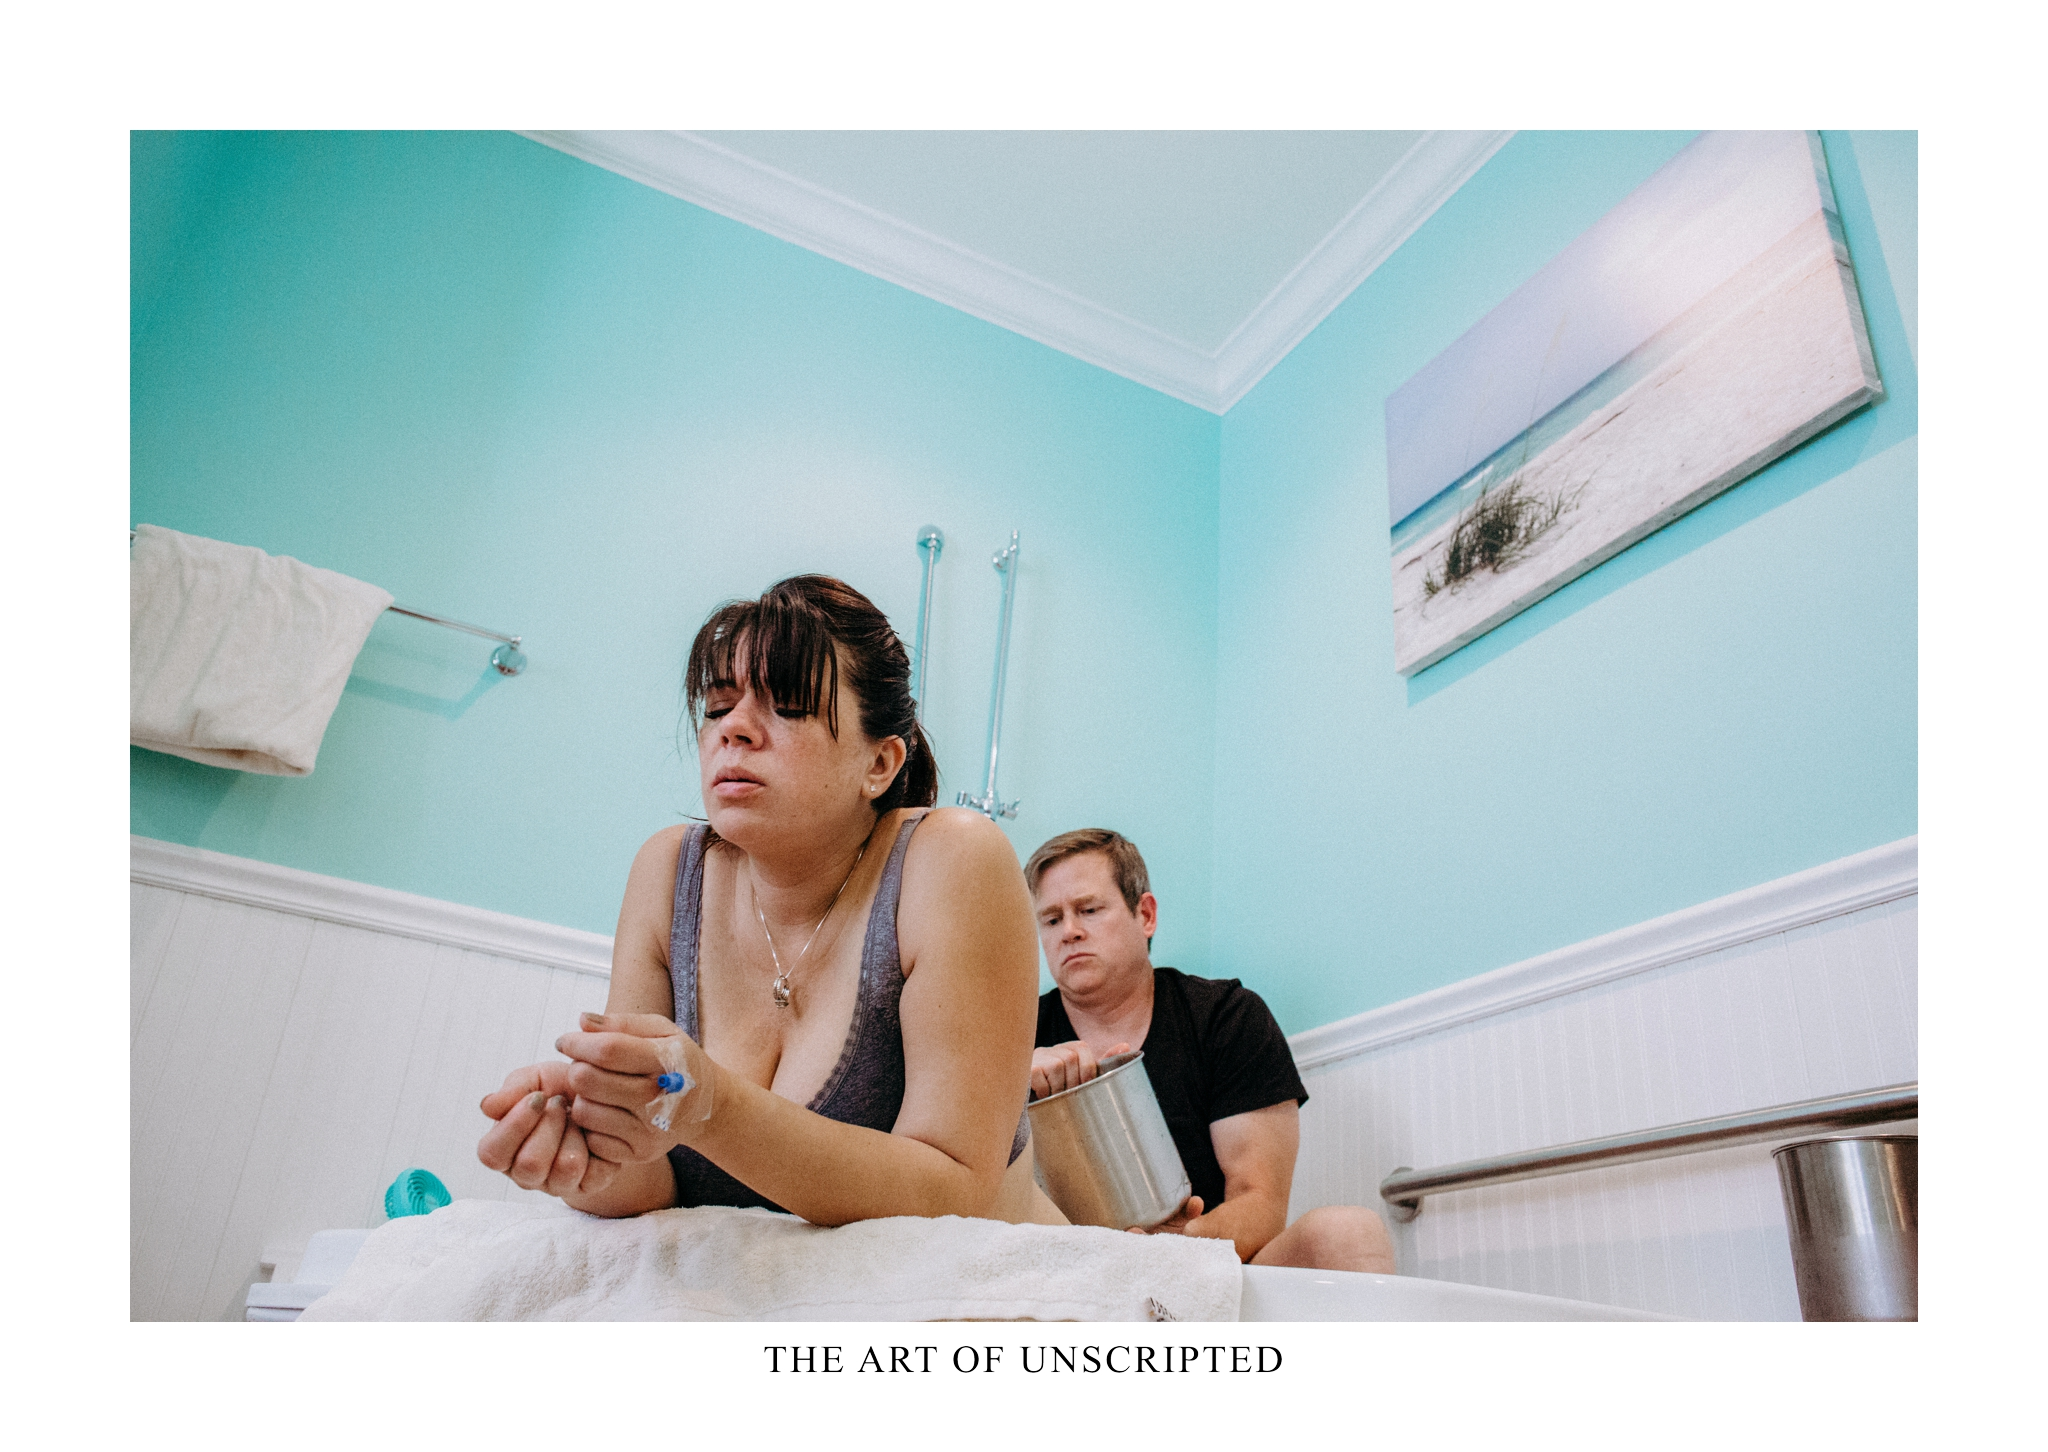 2017-06-10_164844__THE ART OF UNSCRIPTED_SPRINGFIELD MO_BIRTH PHOTOGRAPHER_ DOCUMENTARY_STORYTELLING_417_PHOTOGRAPHER